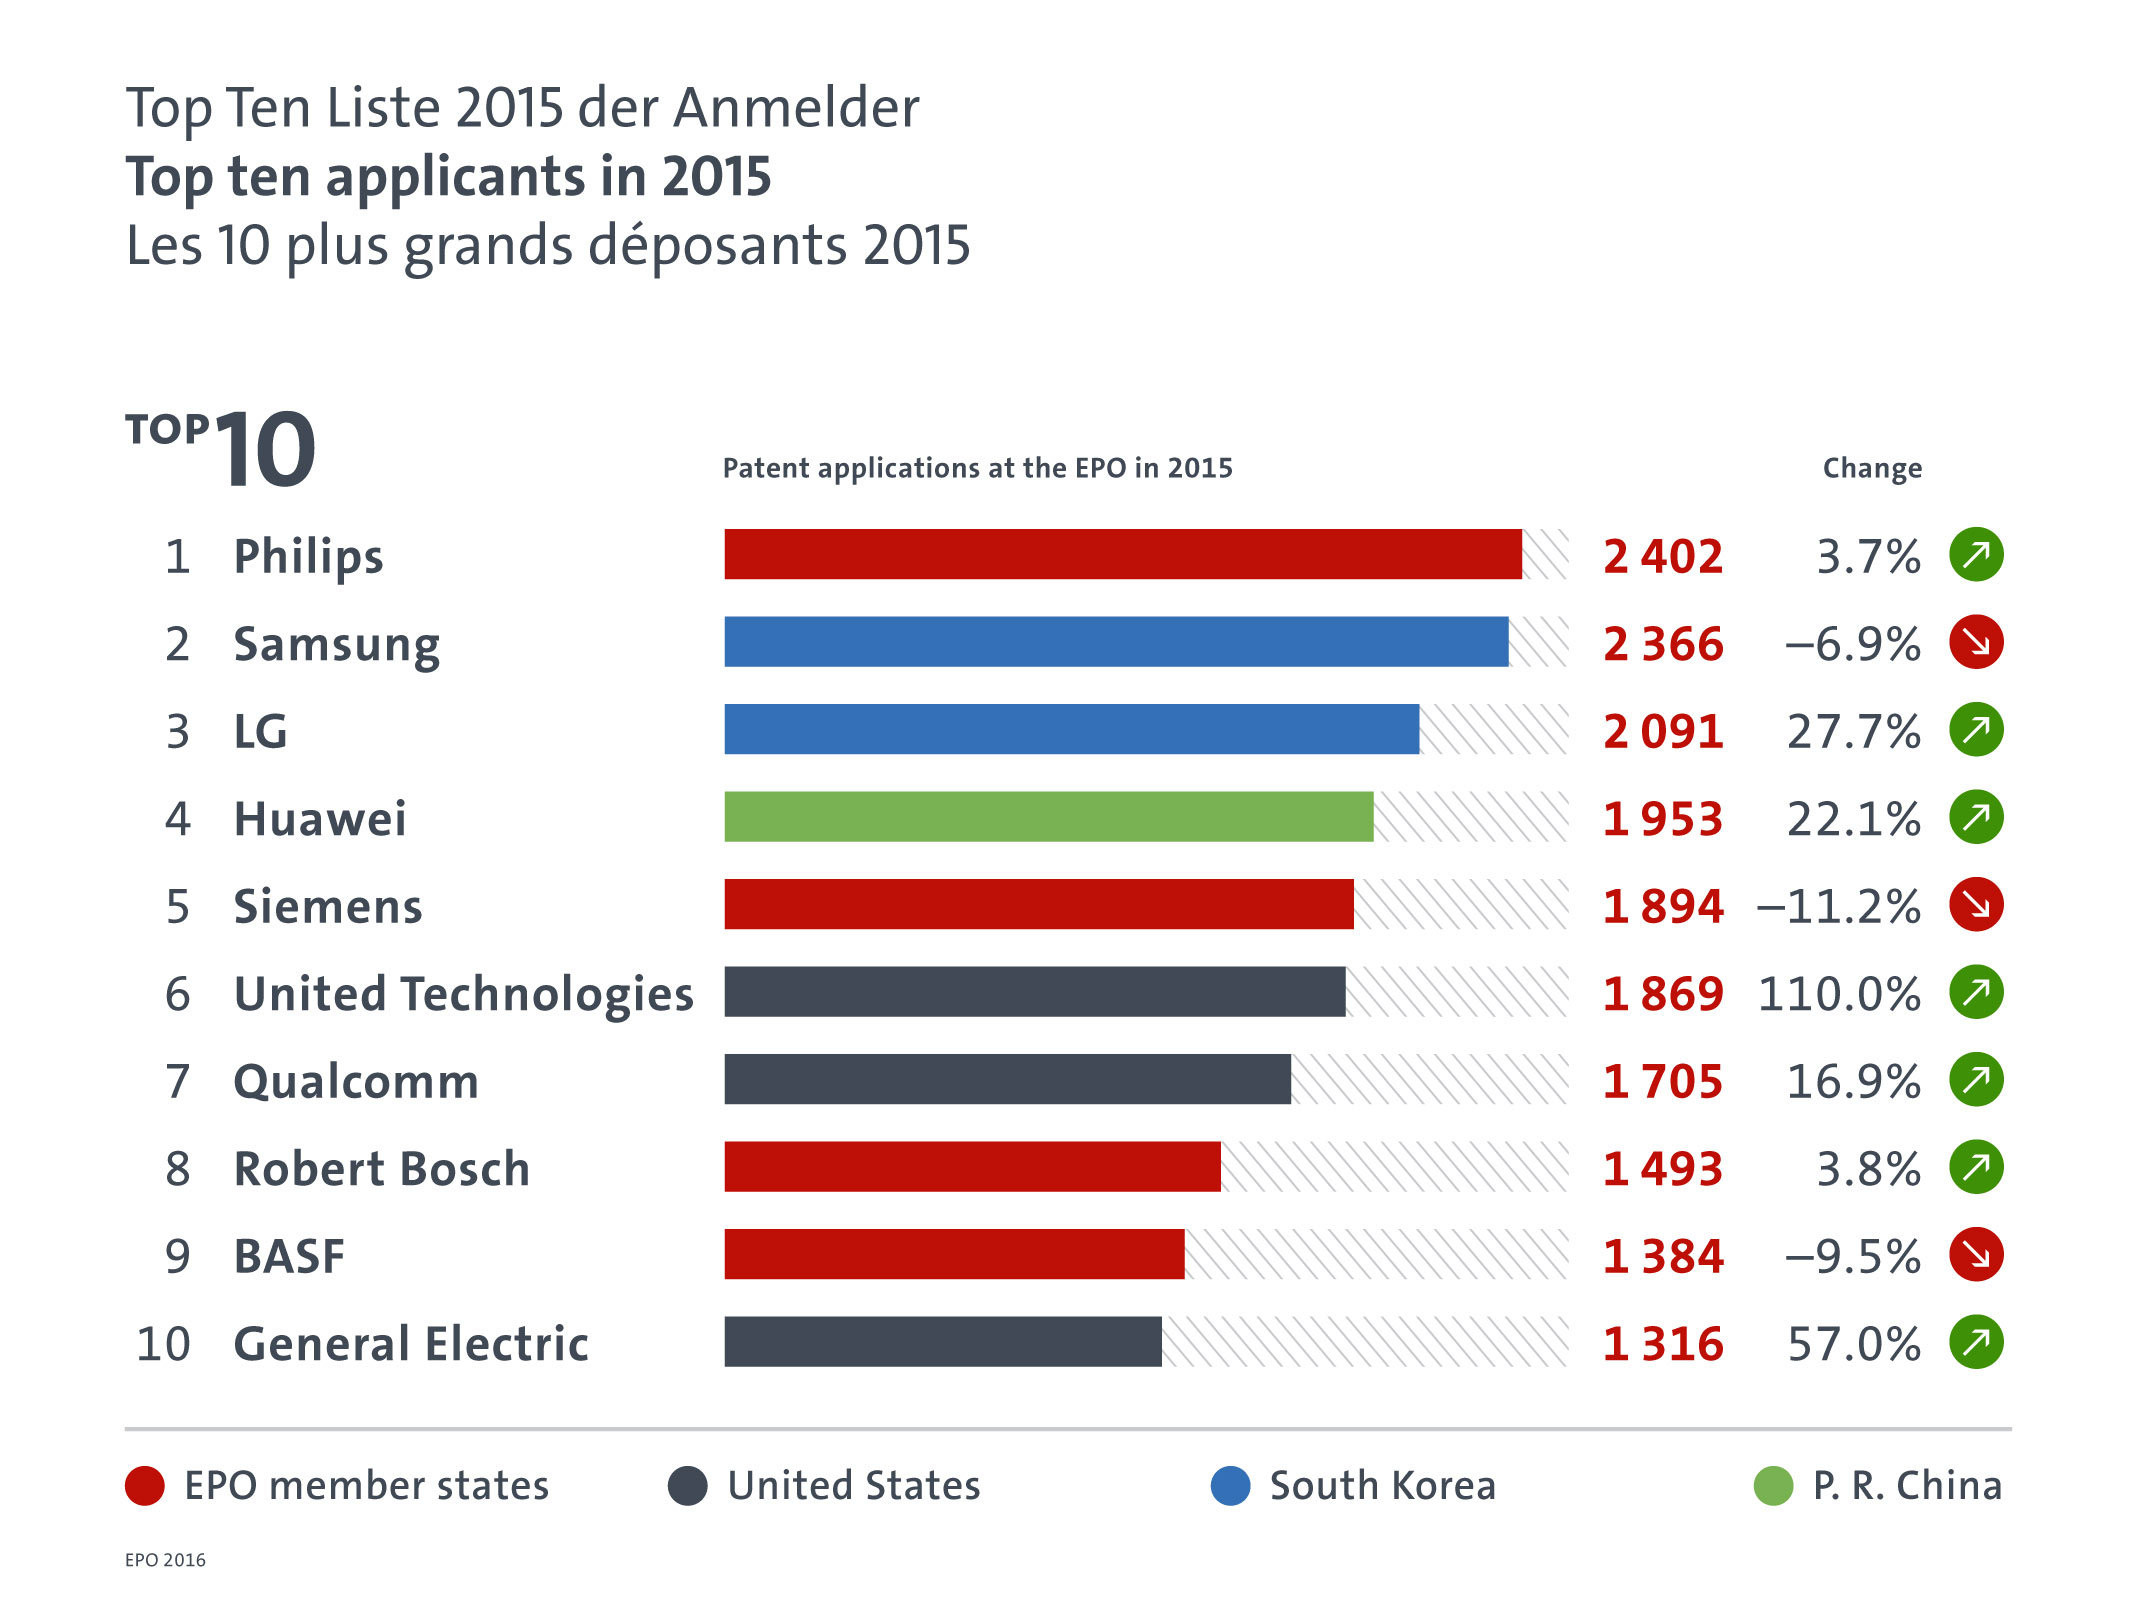 EPO annual results 2015: Top 10 applicants